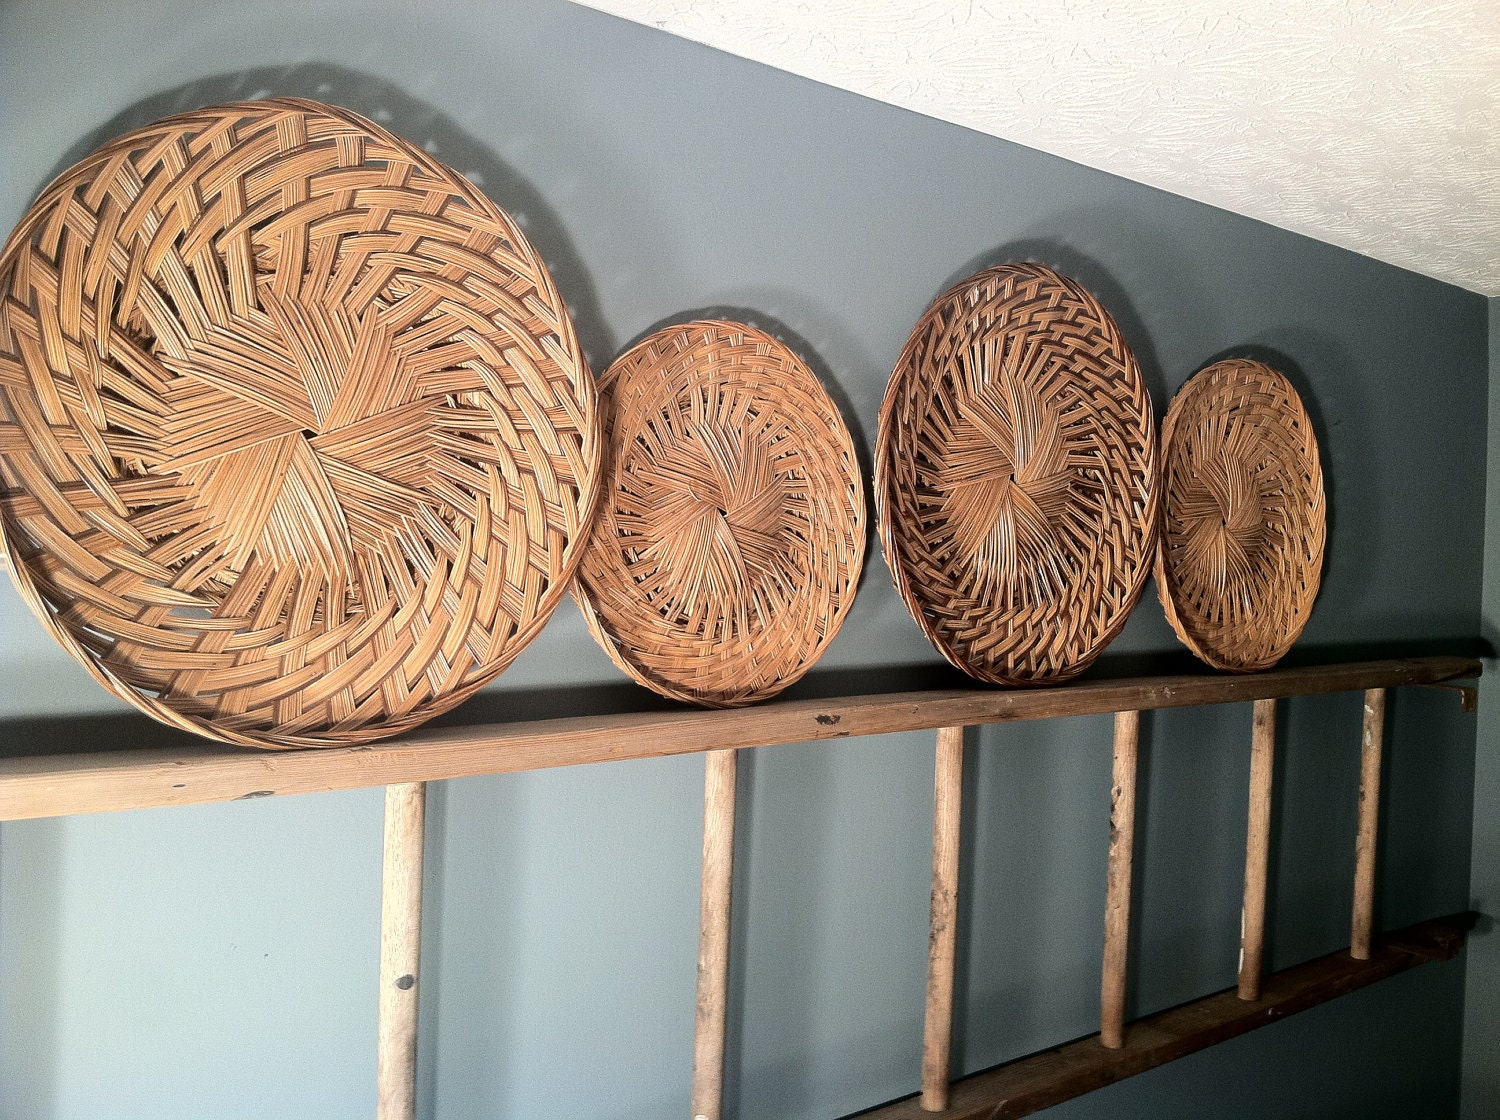 Rattan Wall Decor Round : Woven wicker wall decor round set of by zassystreasures